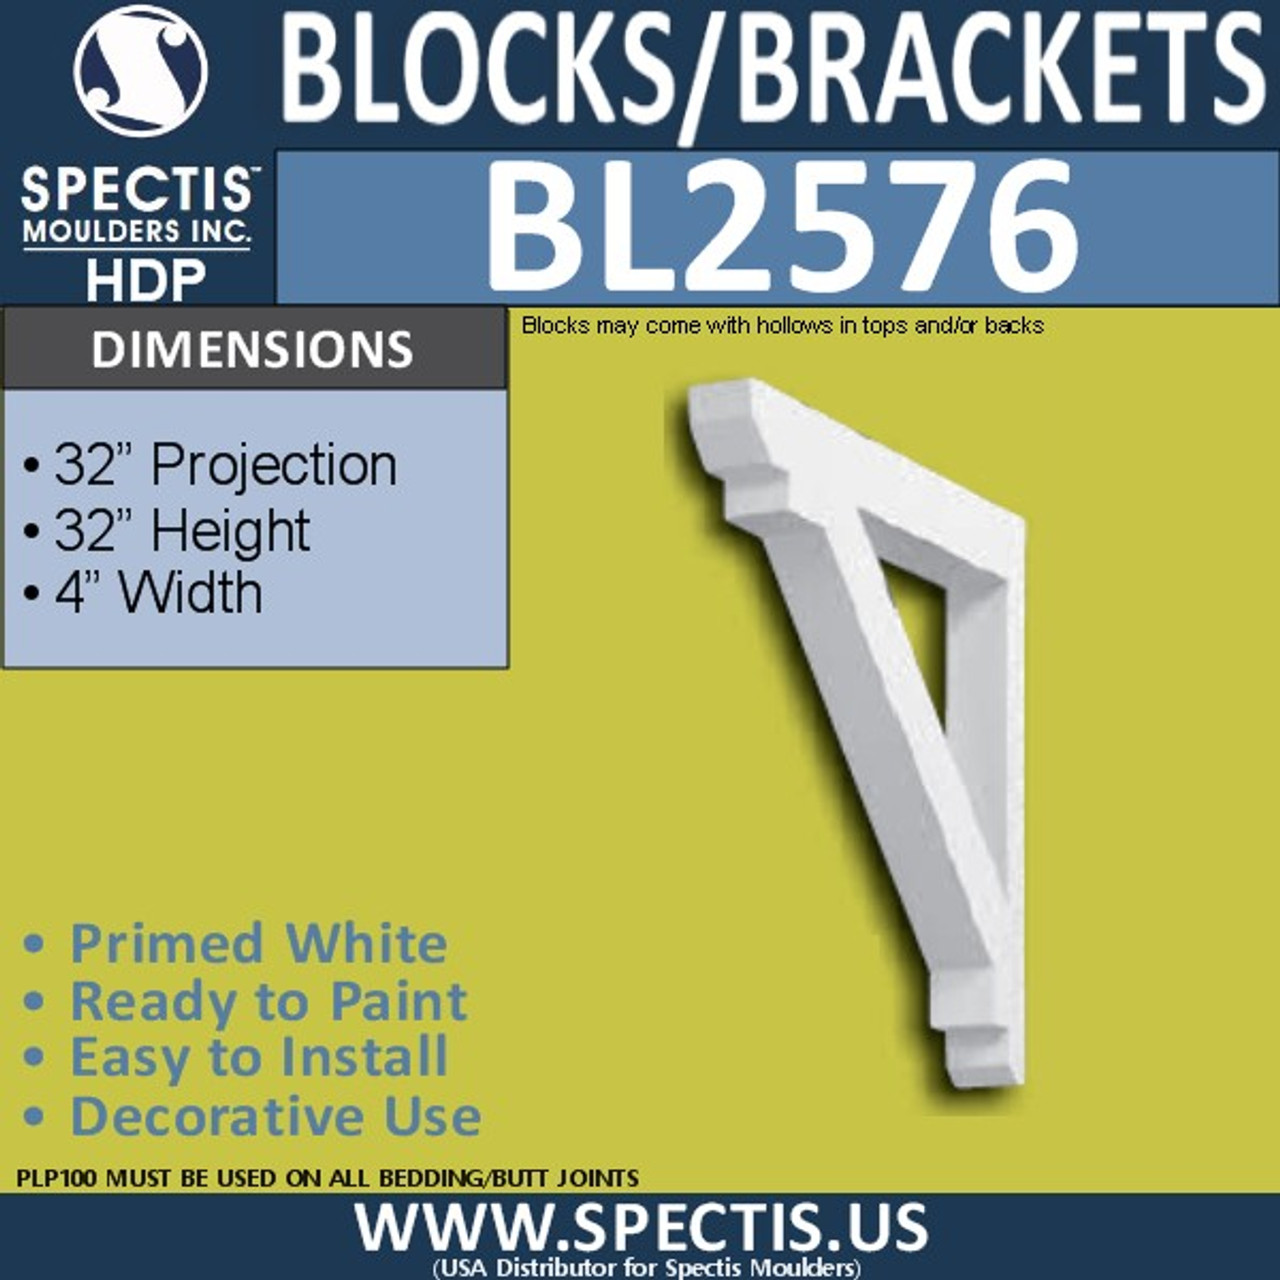 "BL2576 Eave Block or Bracket 4""W x 32""H x 32"" P"